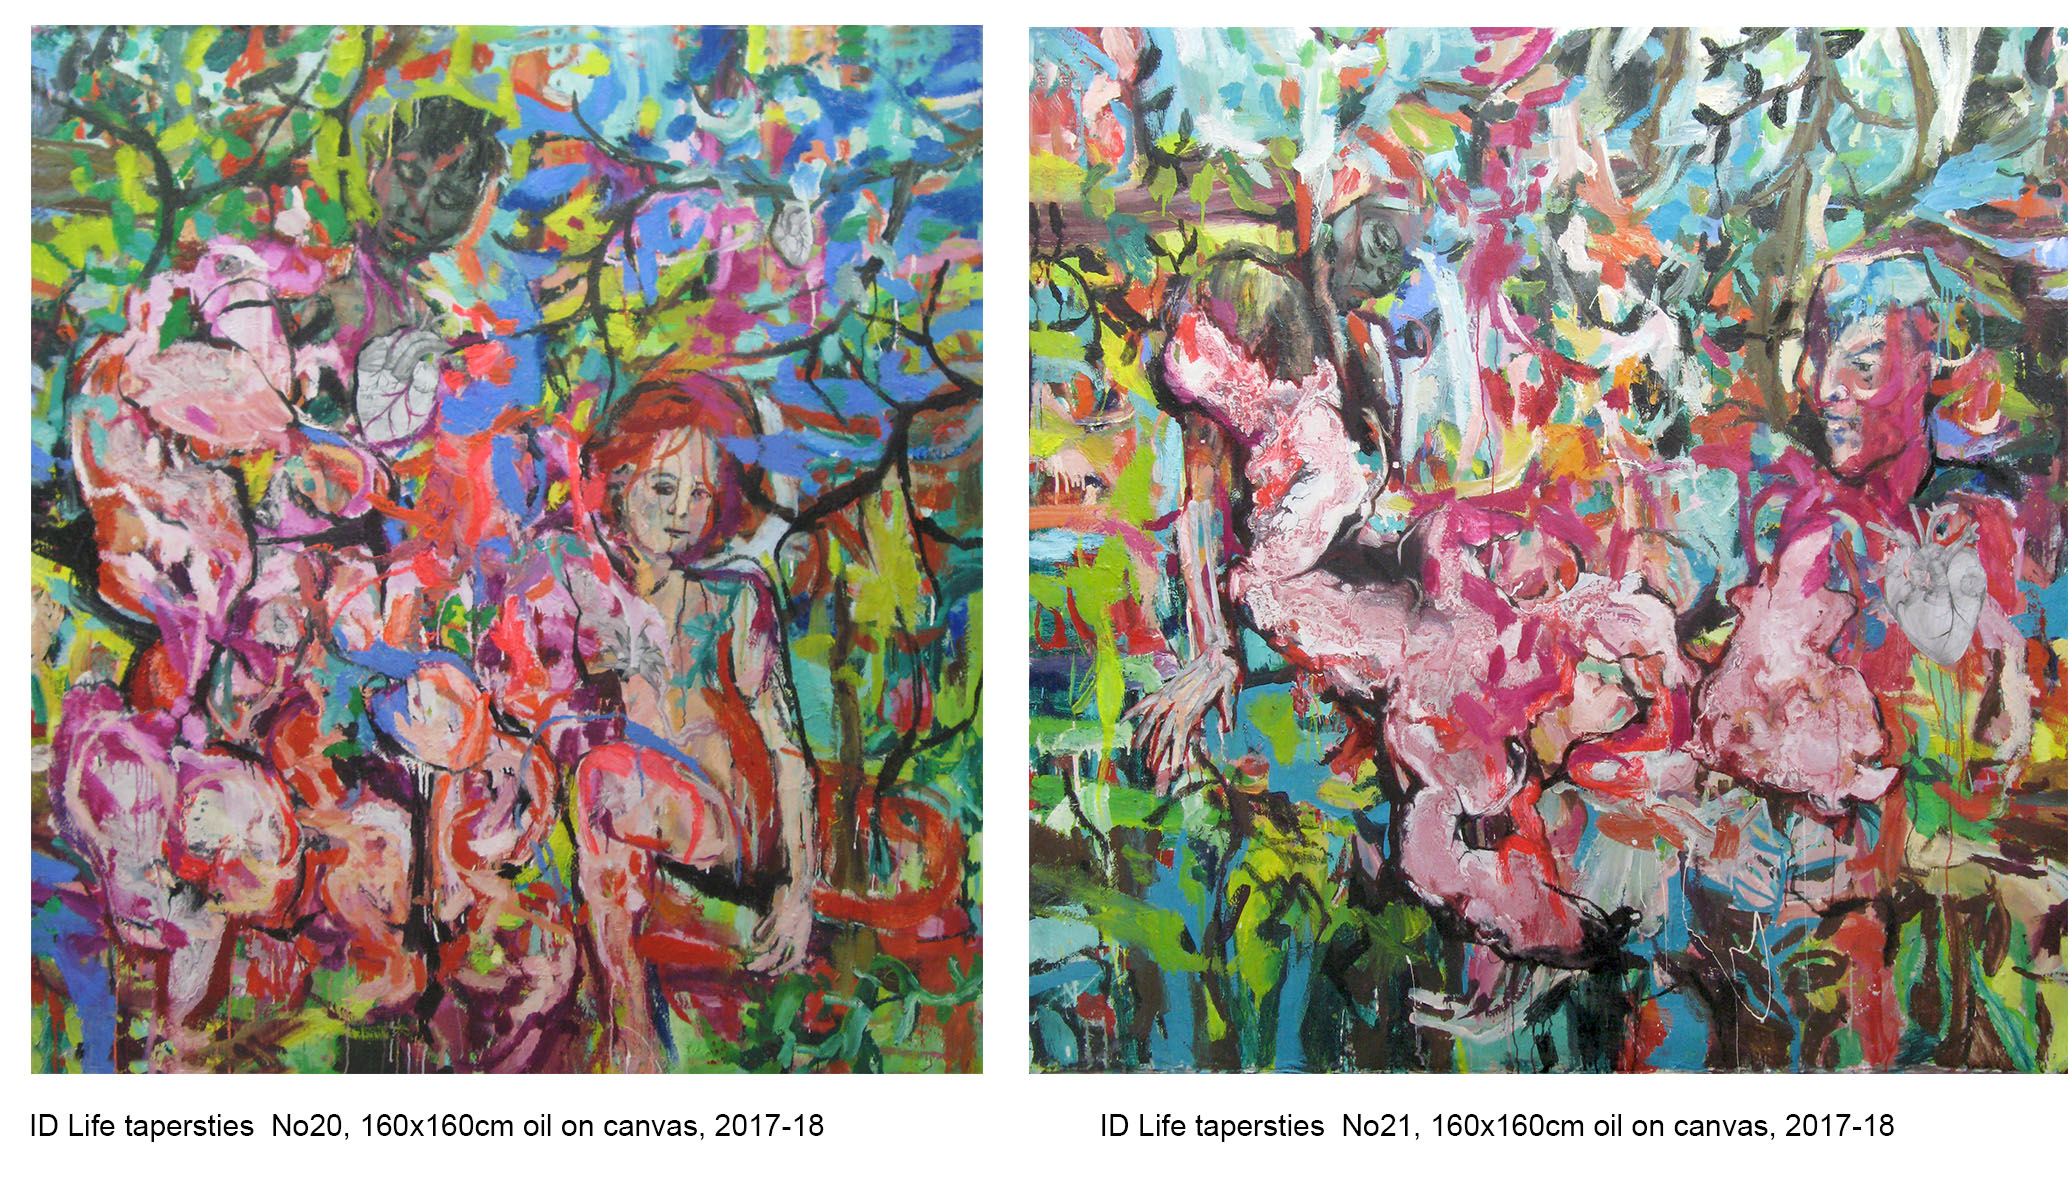 Life tapestries, dyptych, No 20, 21'; 160x160cm' 160x160cm, oil on canvas, 2017-18